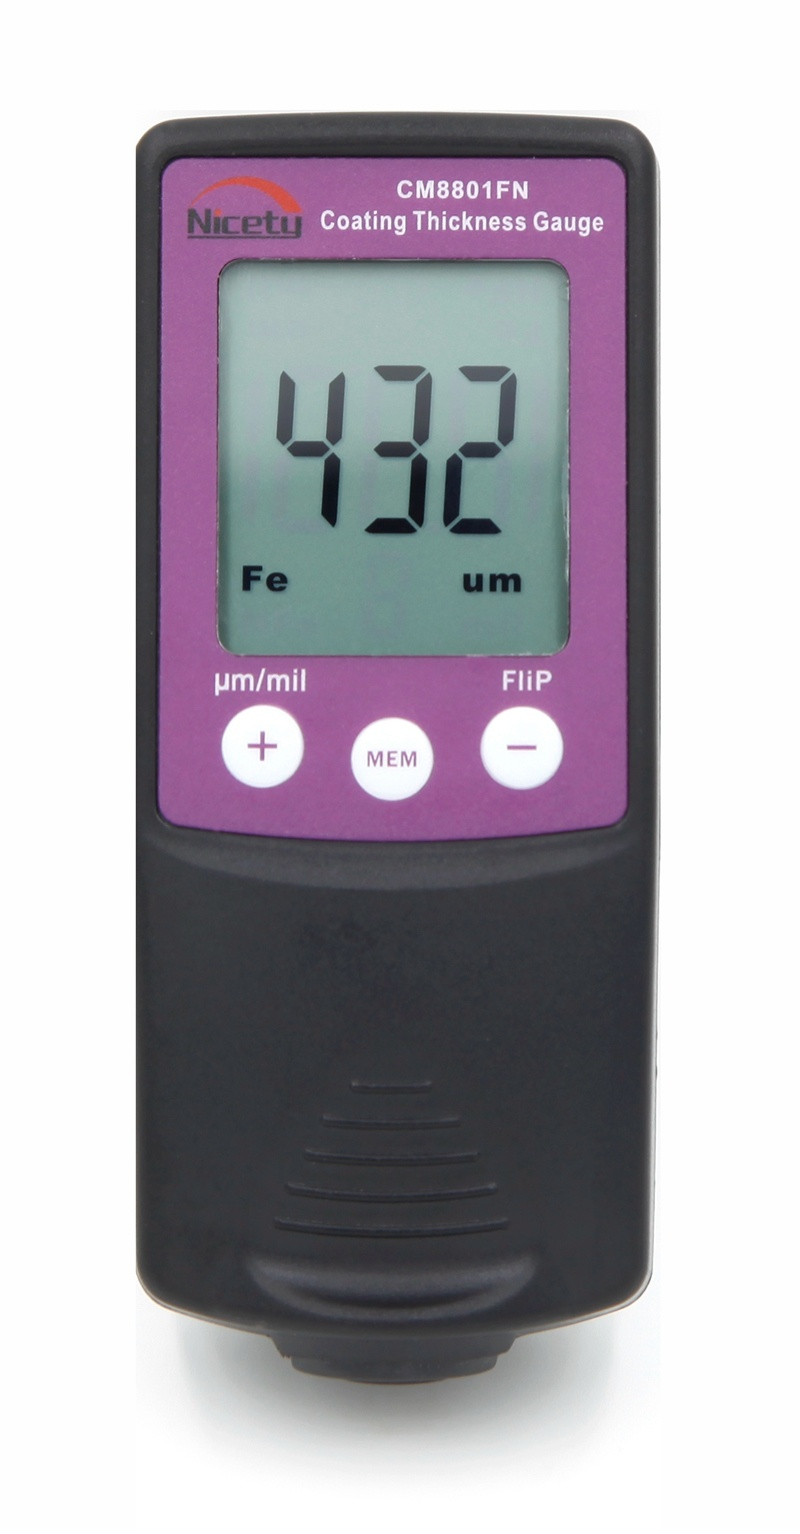 Digital Paint Coating Thickness Gauge Meter Thickness Tester Cm8801fn